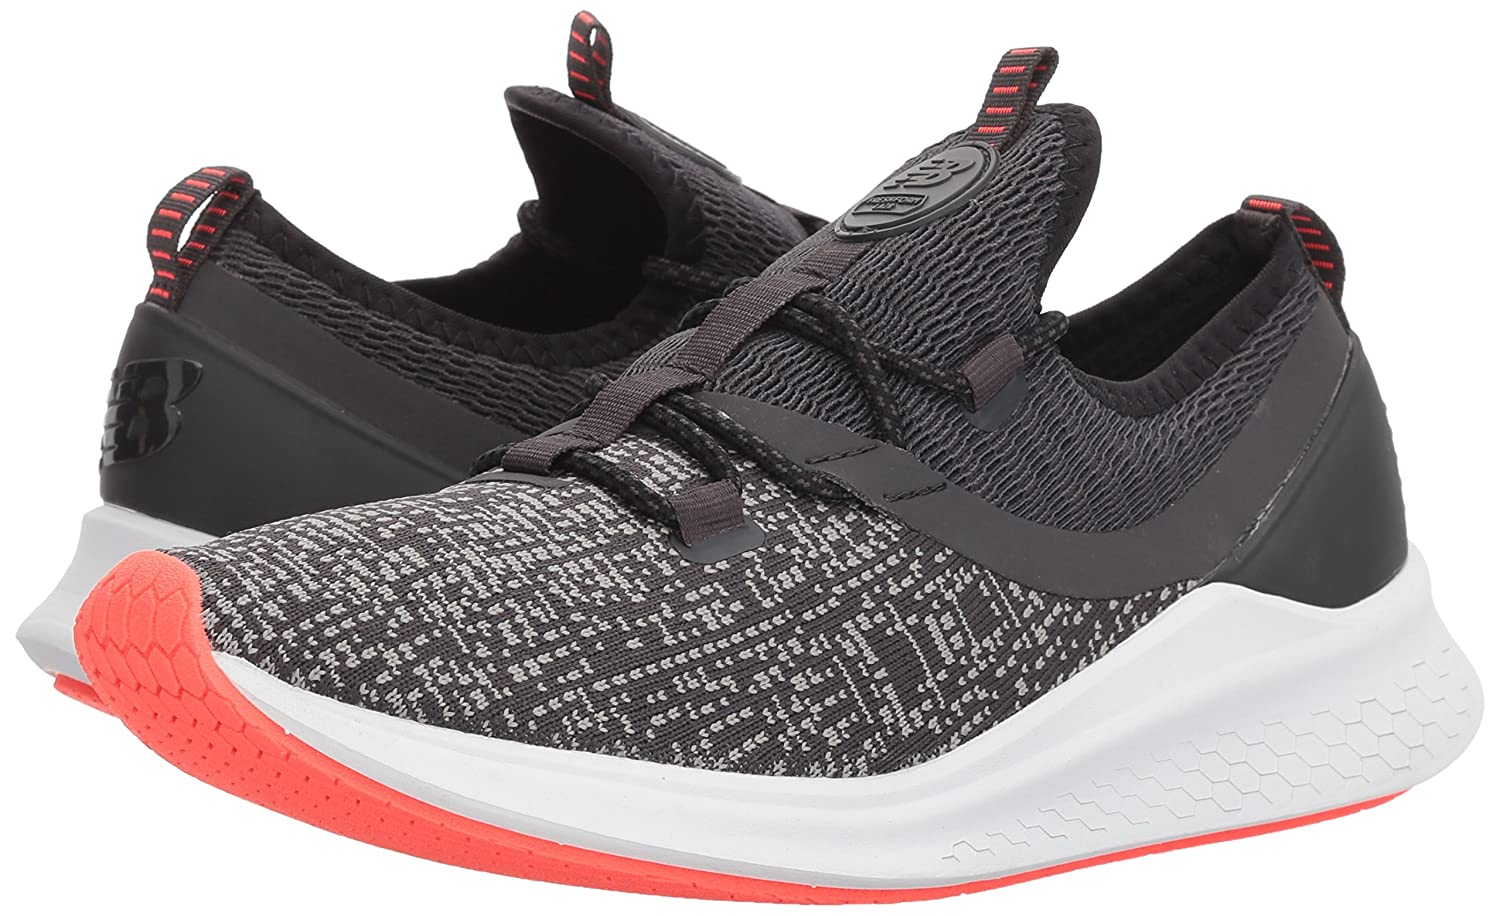 New Balance Women's Fresh Foam Shoe Lazr V1 Sport Running Shoe Foam B06XSC85CP 8 W US|Team Away Grey/Phantom/White Munsell 87bf06